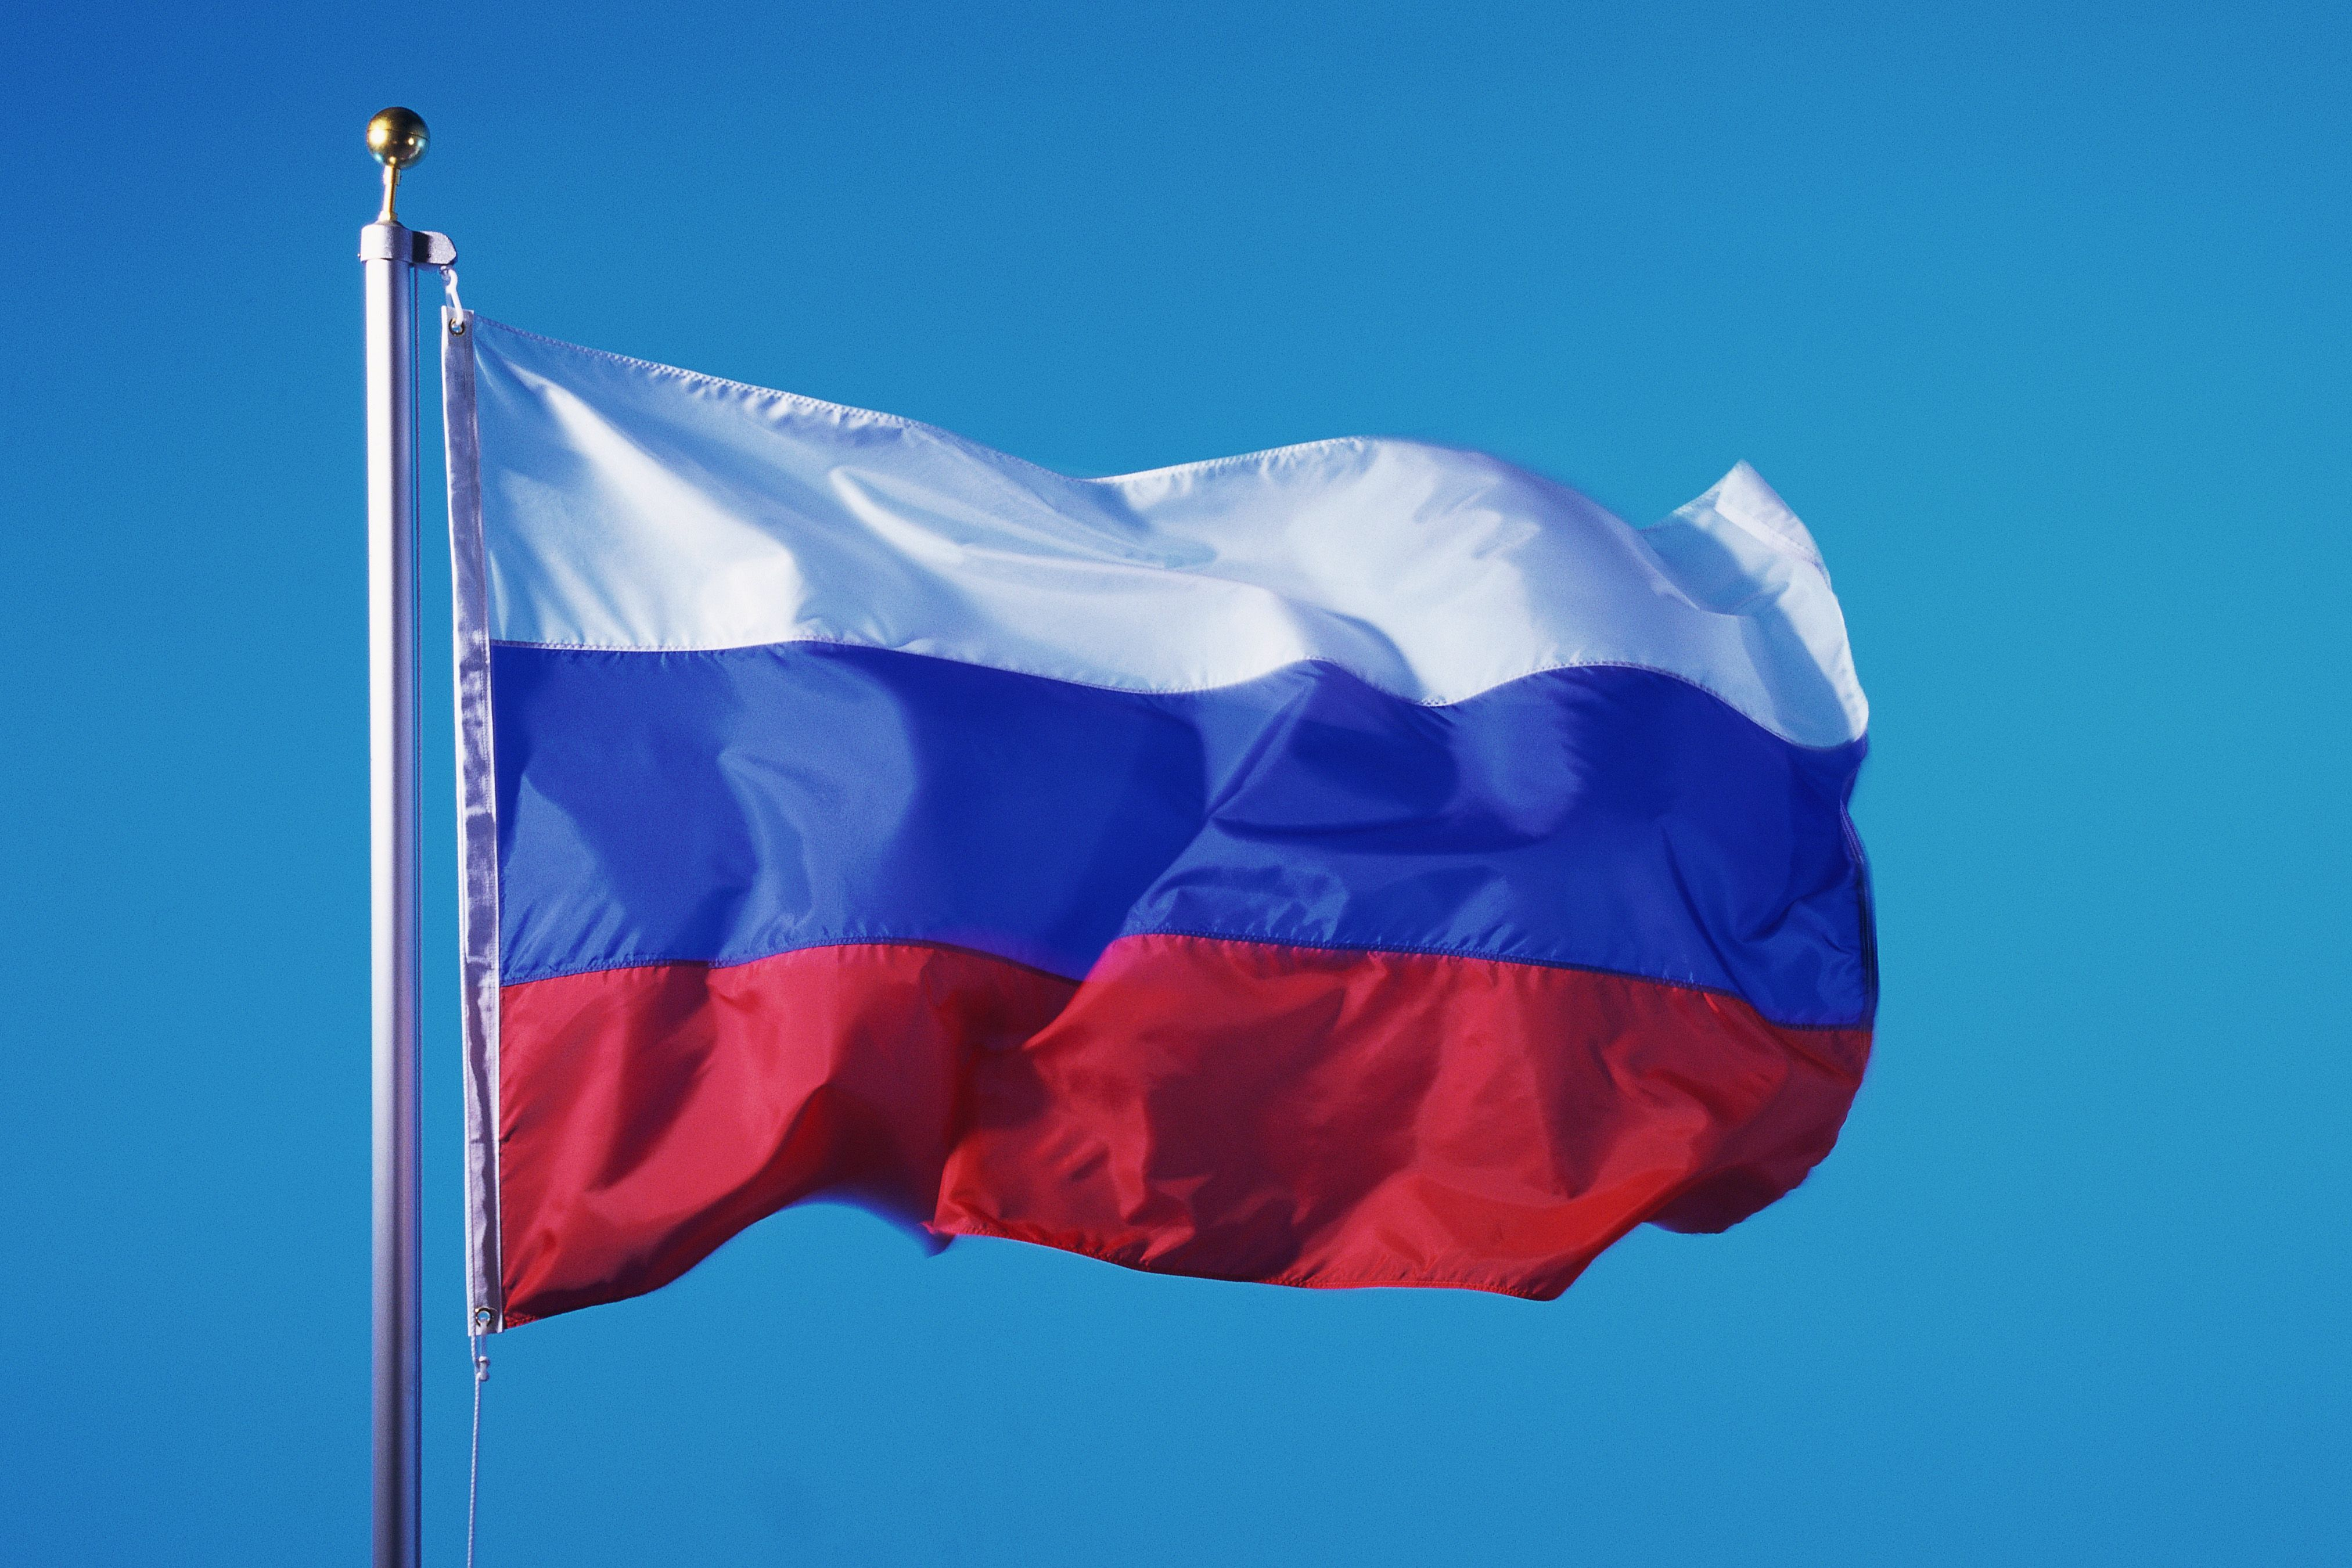 Russia has been Banned from International Sport for Doping